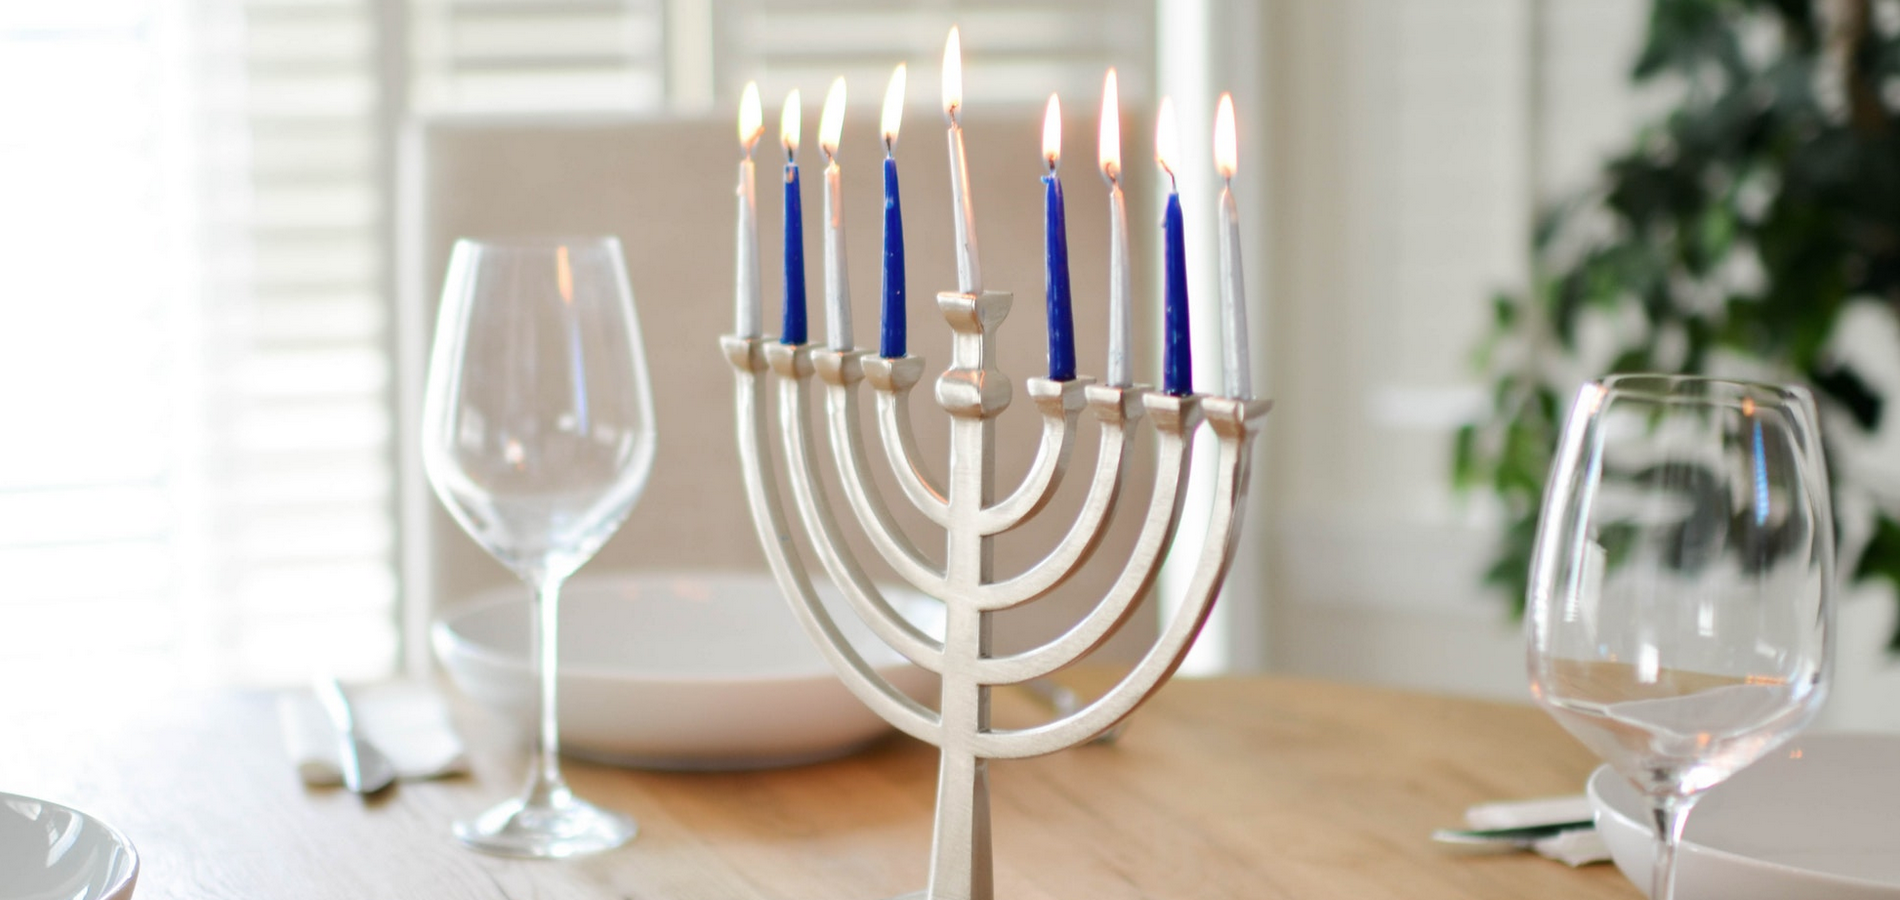 Who Should Light The Menorah?